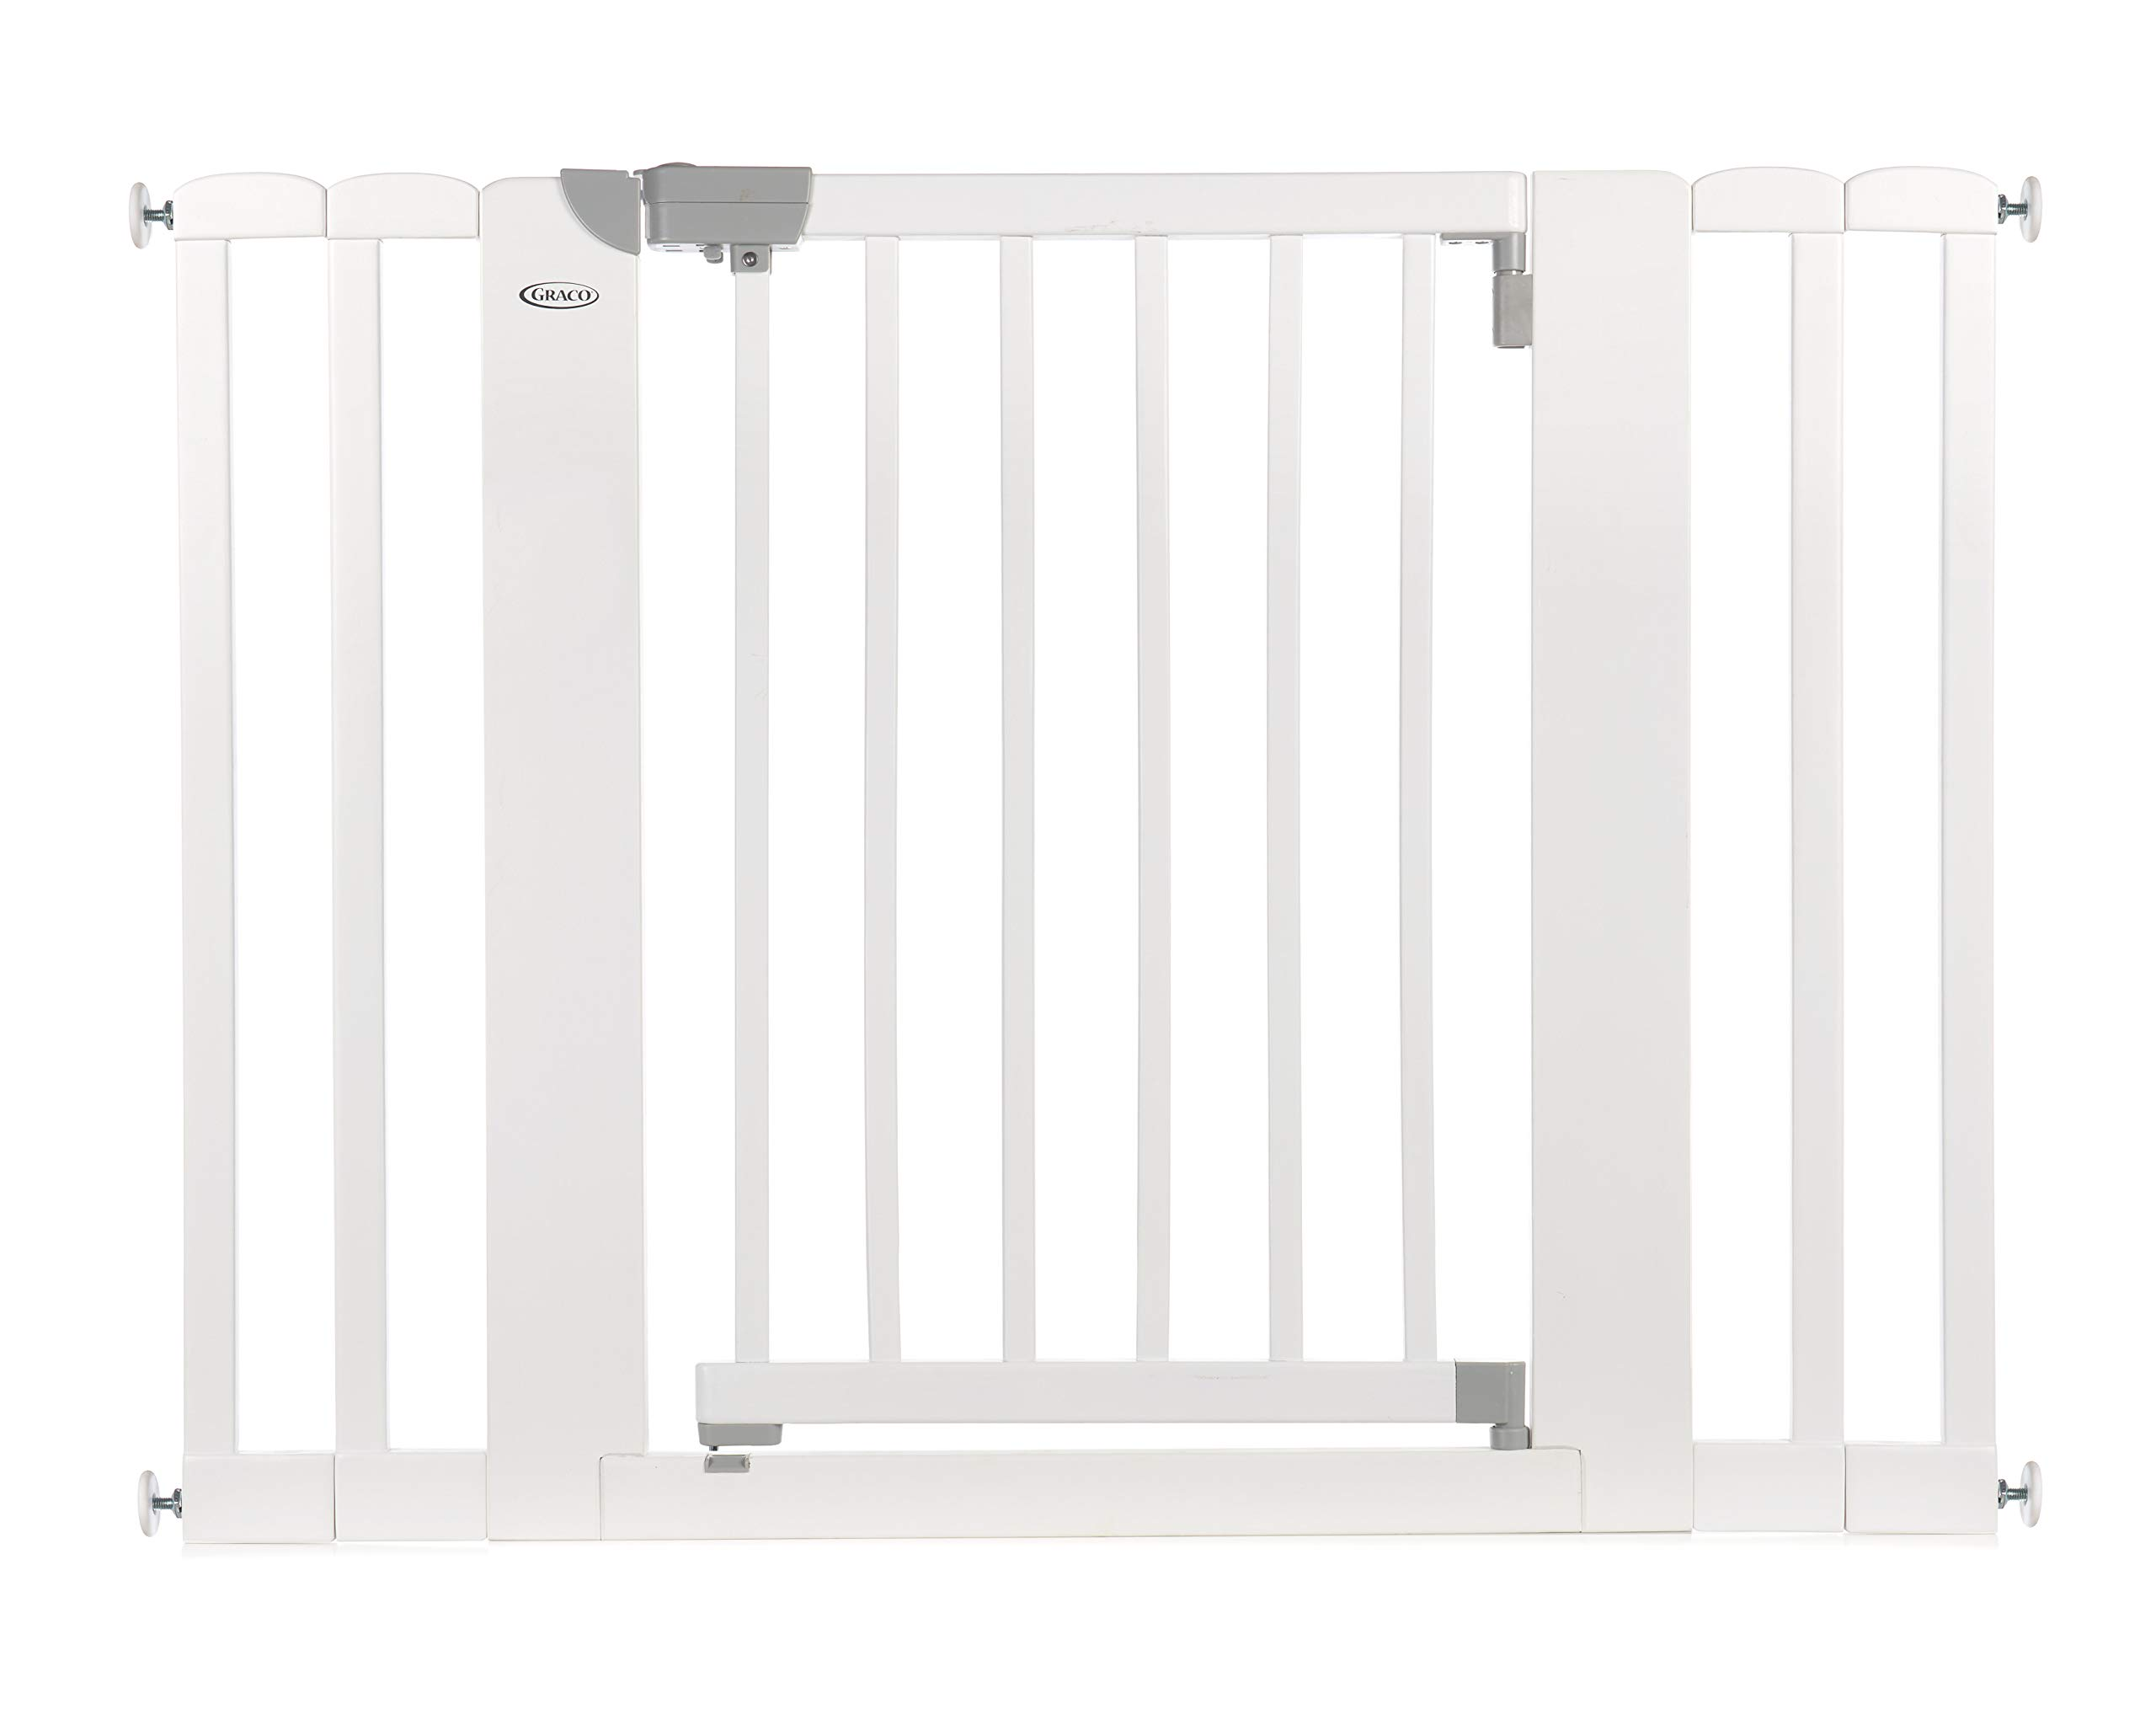 """Graco Safespace Walk-Through Wooden Safety Gate - Expands from 29-43.75"""", 30"""" Tall, Includes 4 Extensions, Pressure Mounted Walk Thru Baby Gate, Perfect for Children & Pets, White"""